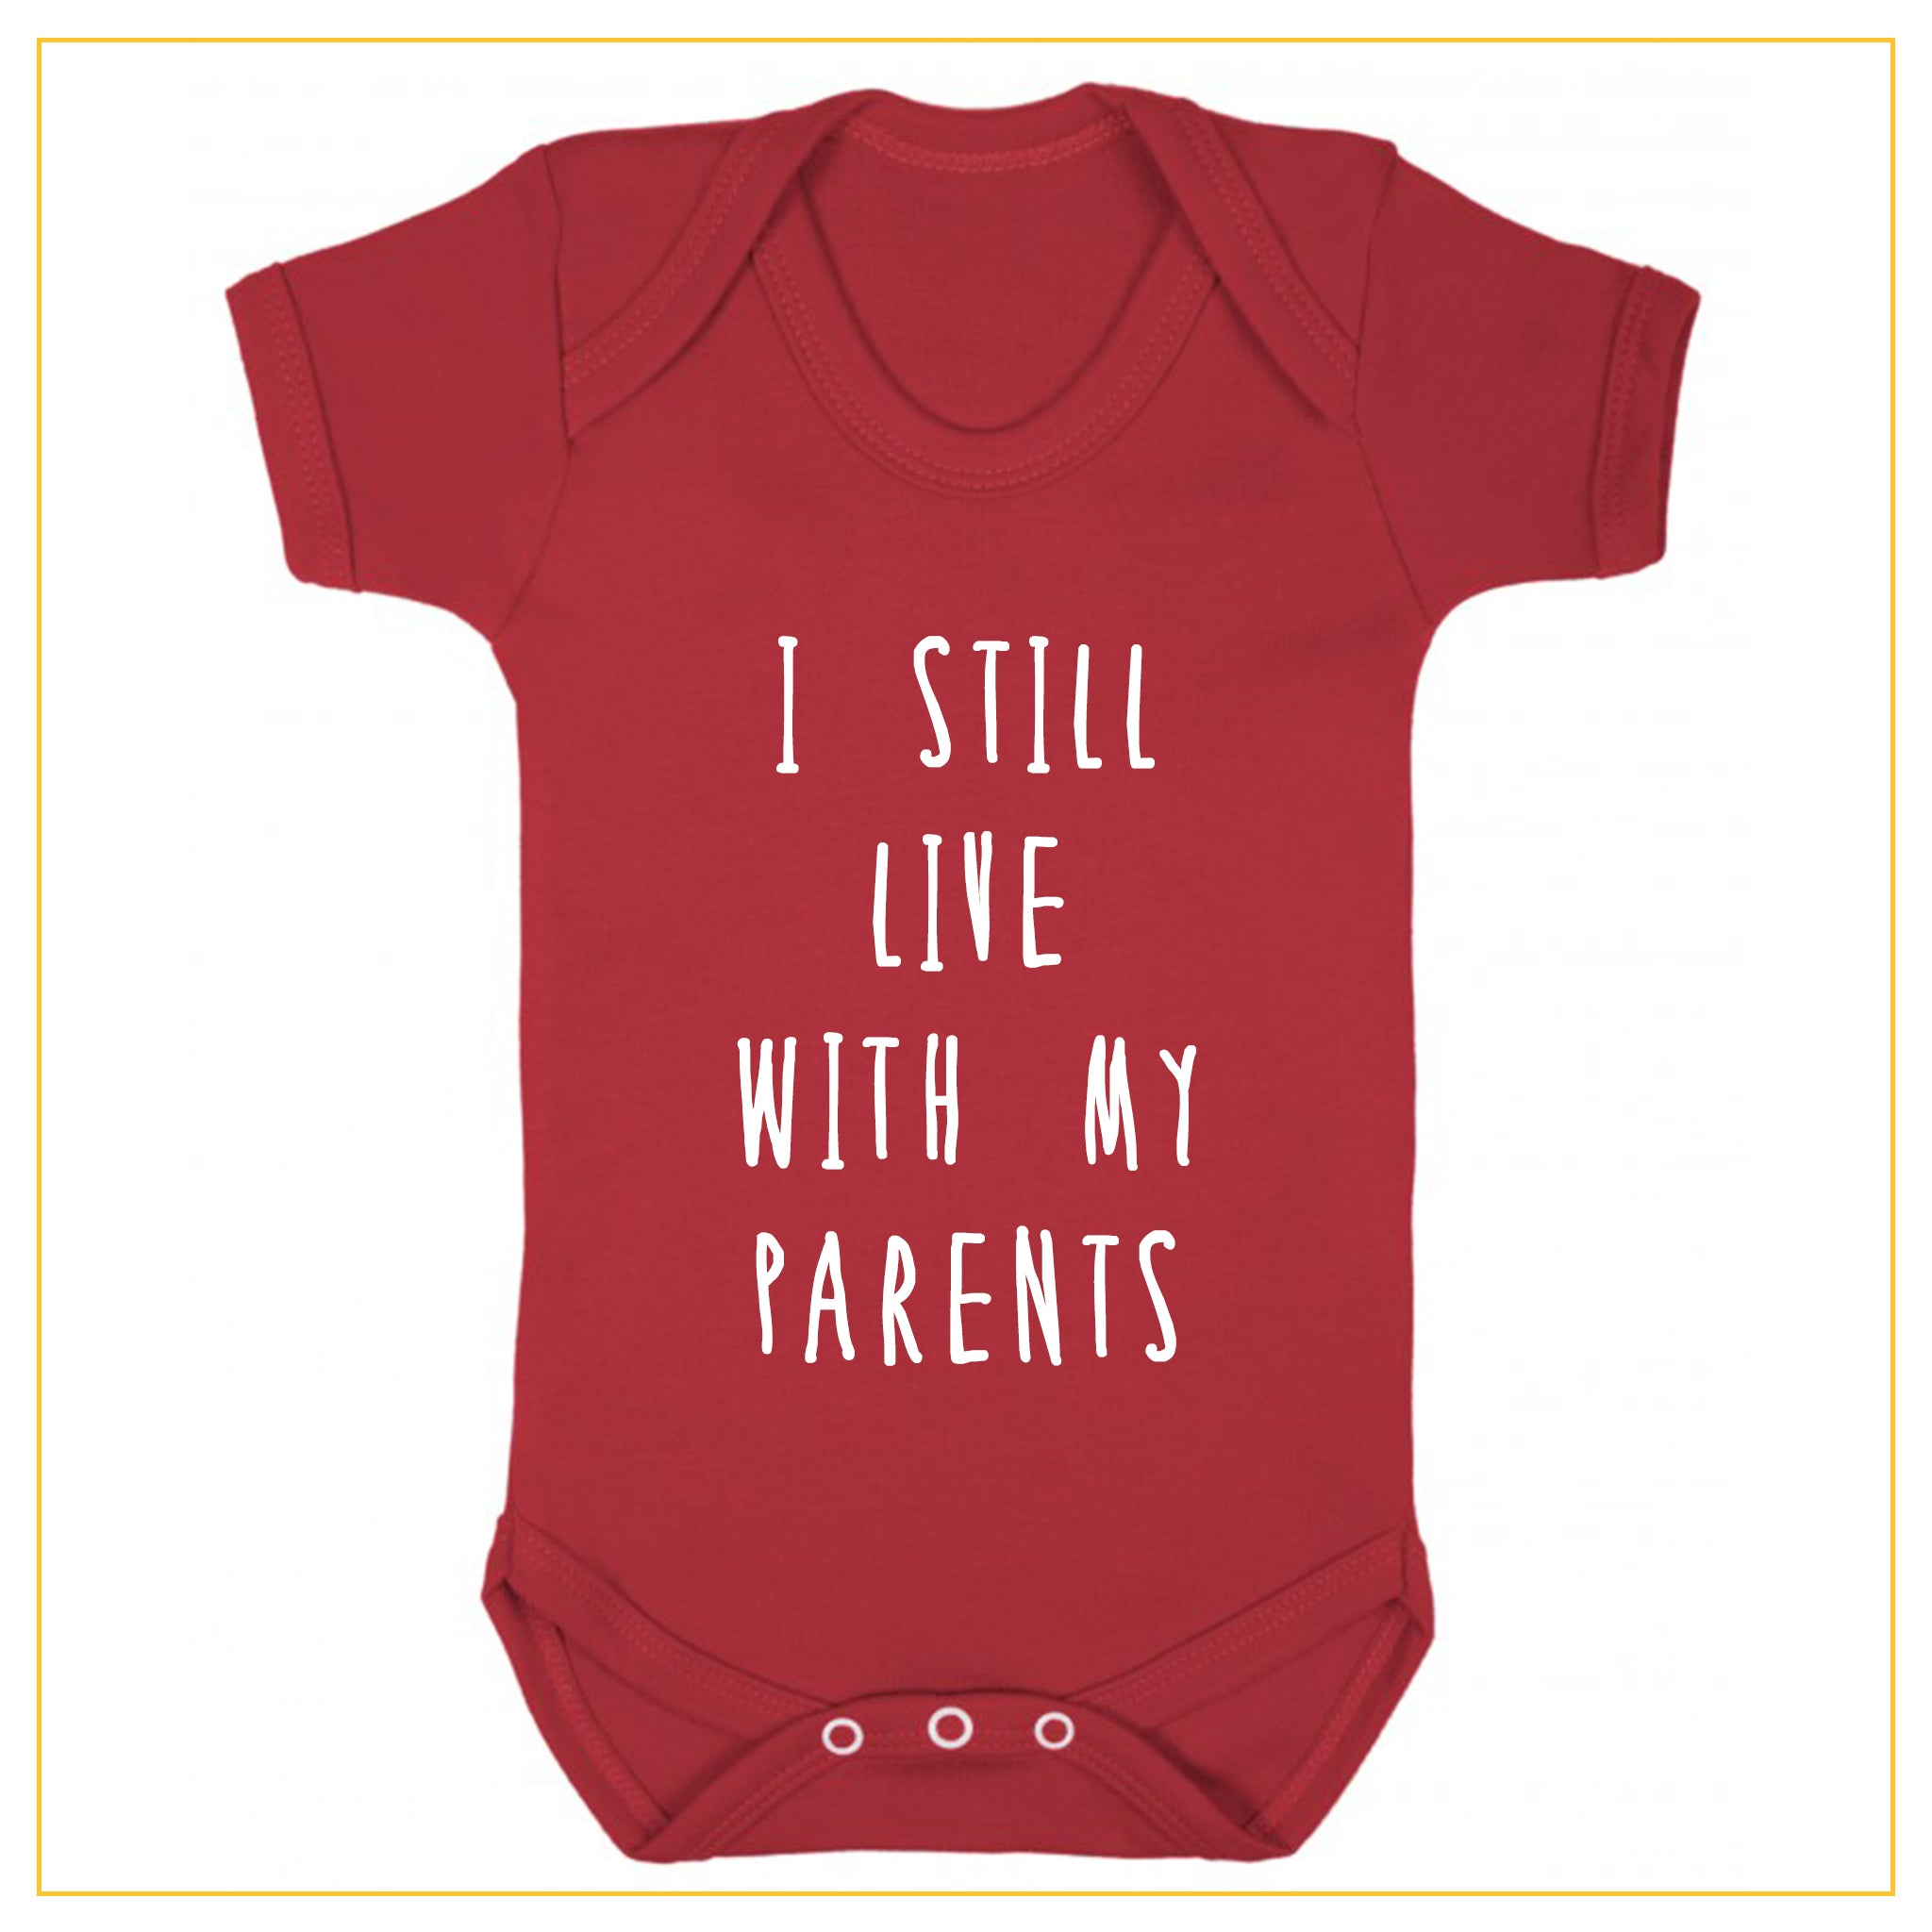 I still live with my parents baby onesie in red